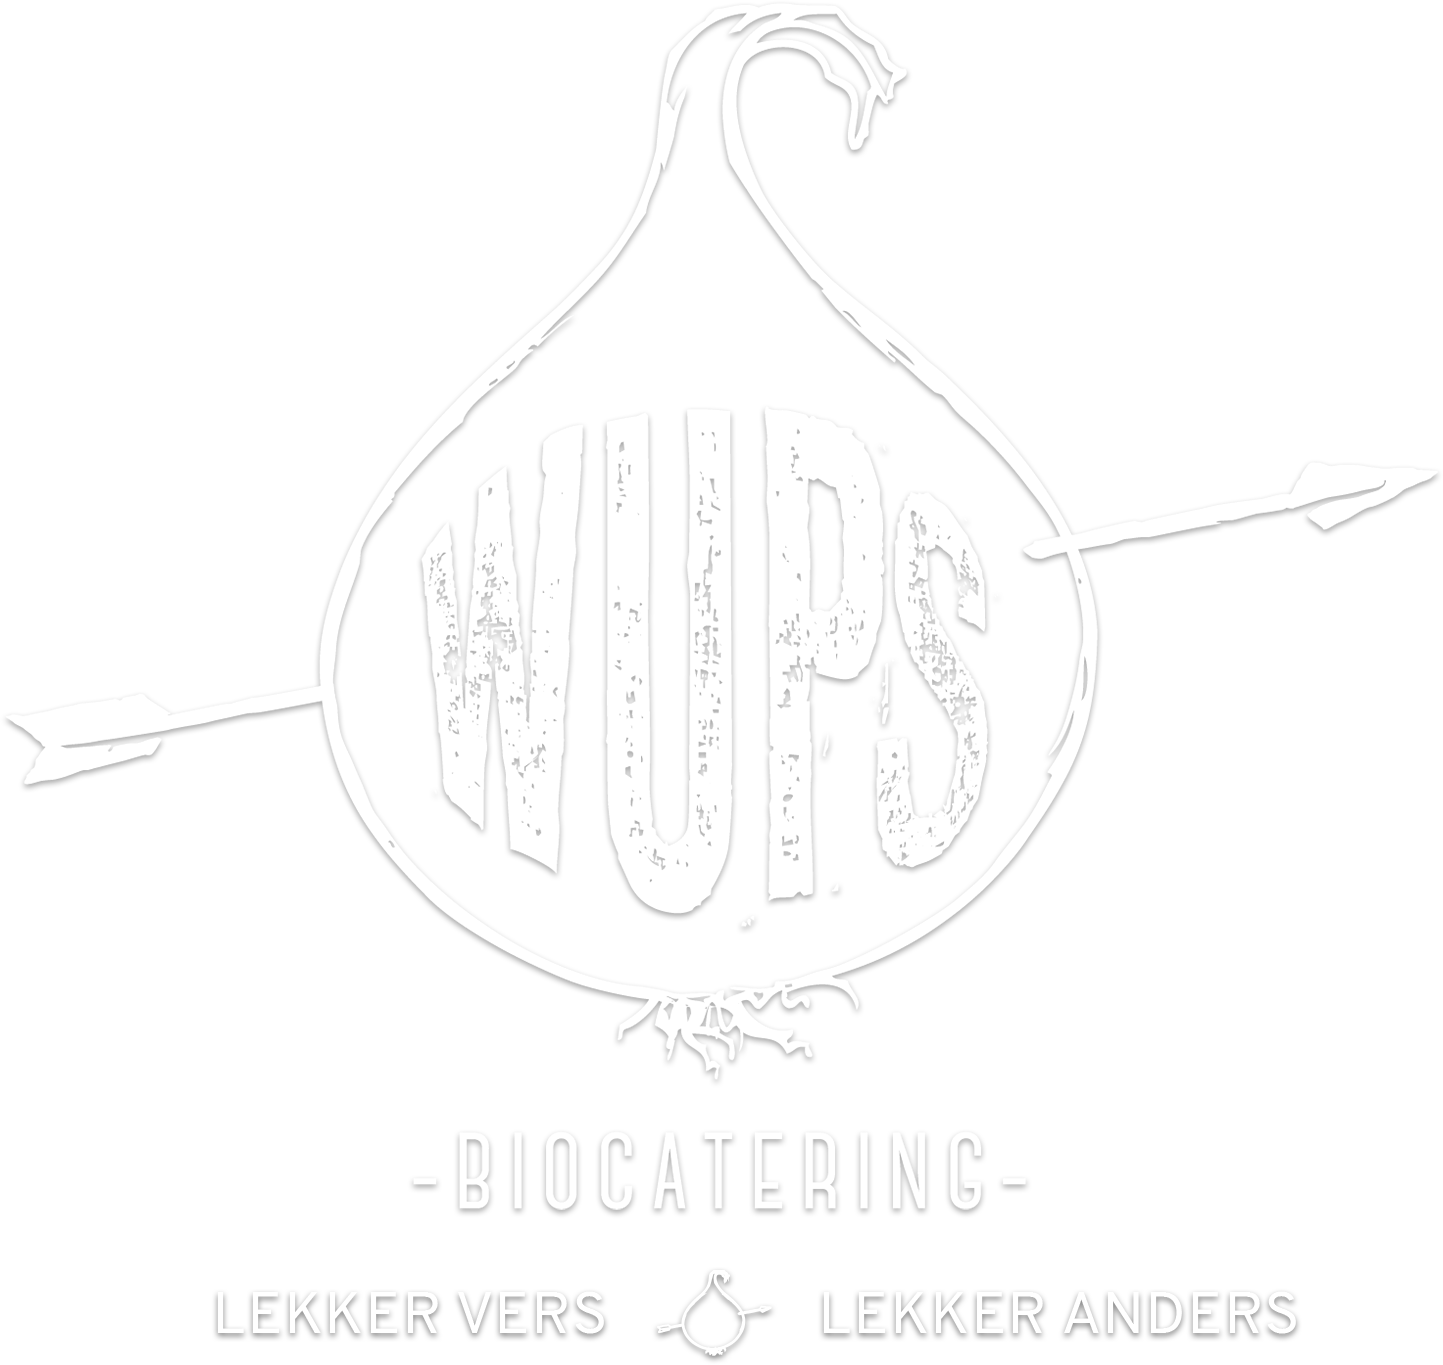 Wups biocatering